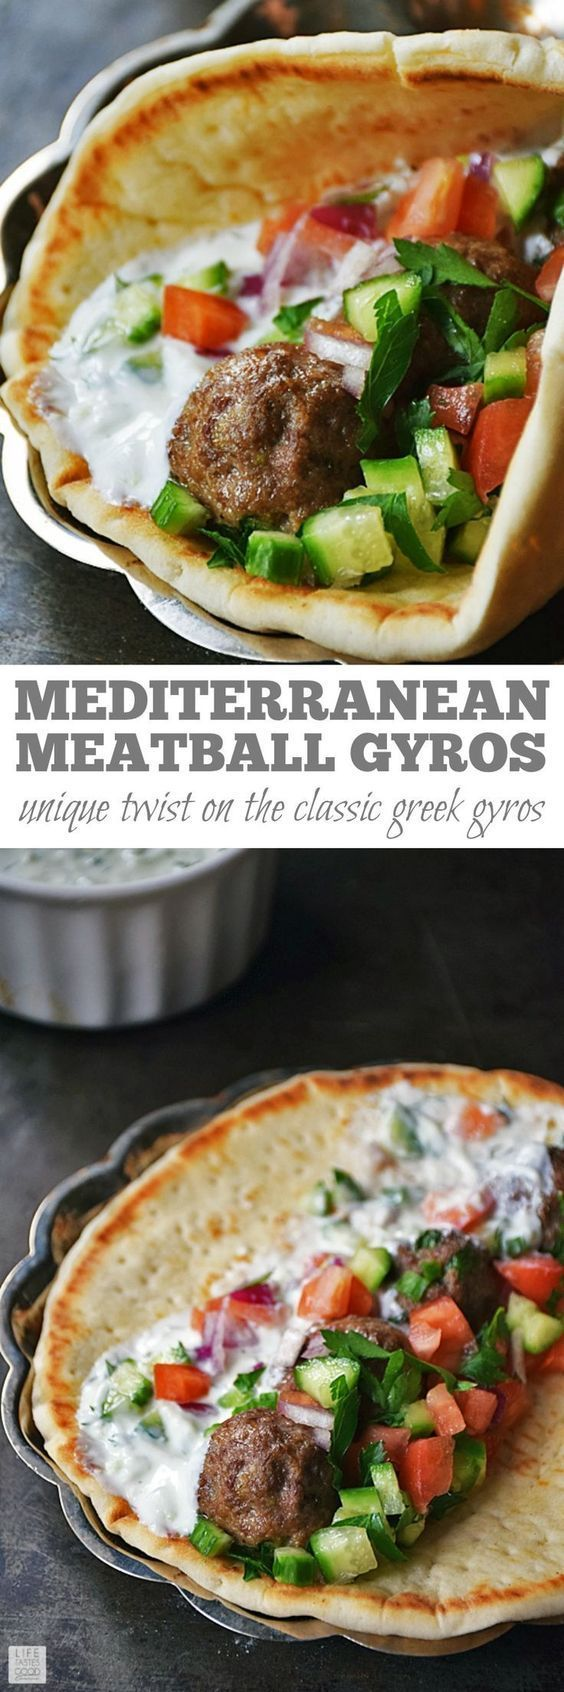 Mediterranean Meatball Gyros Sandwiches   by Life Tastes Good are full of flavor and very satisfying! Using simple flavors often found in Greek cuisine, this unique recipe puts a twist on a traditional gyros recipe. Makes a tasty dinner or appetizer recipe for parties too! #SundaySupper